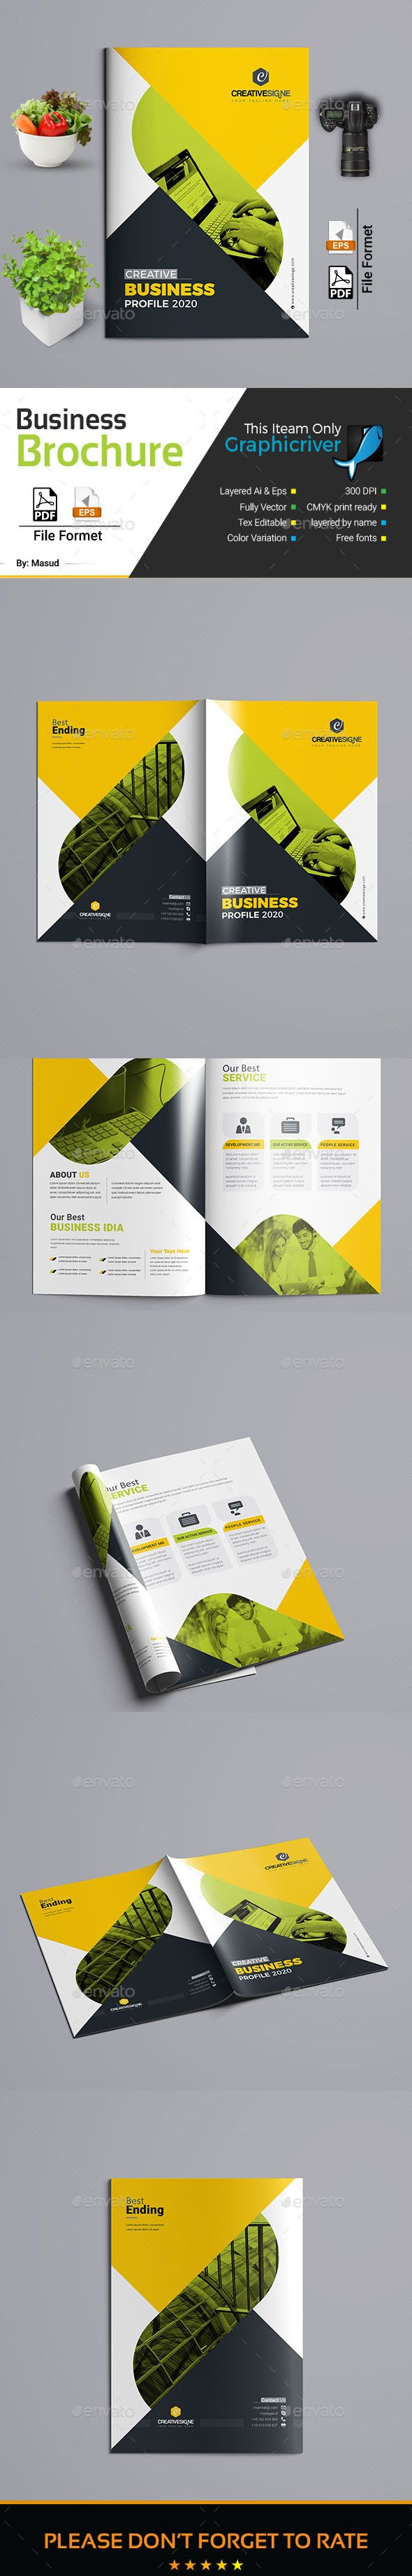 #Corporate #Bi Fold #Brochure - #Brochures #Print #Templates. Corporate Bi Fold Brochure 11.69×8.27 print dimension with Bleed + Trim Mark Illustrator fILE CMYK Print ready Text editable Both side design with Different colour